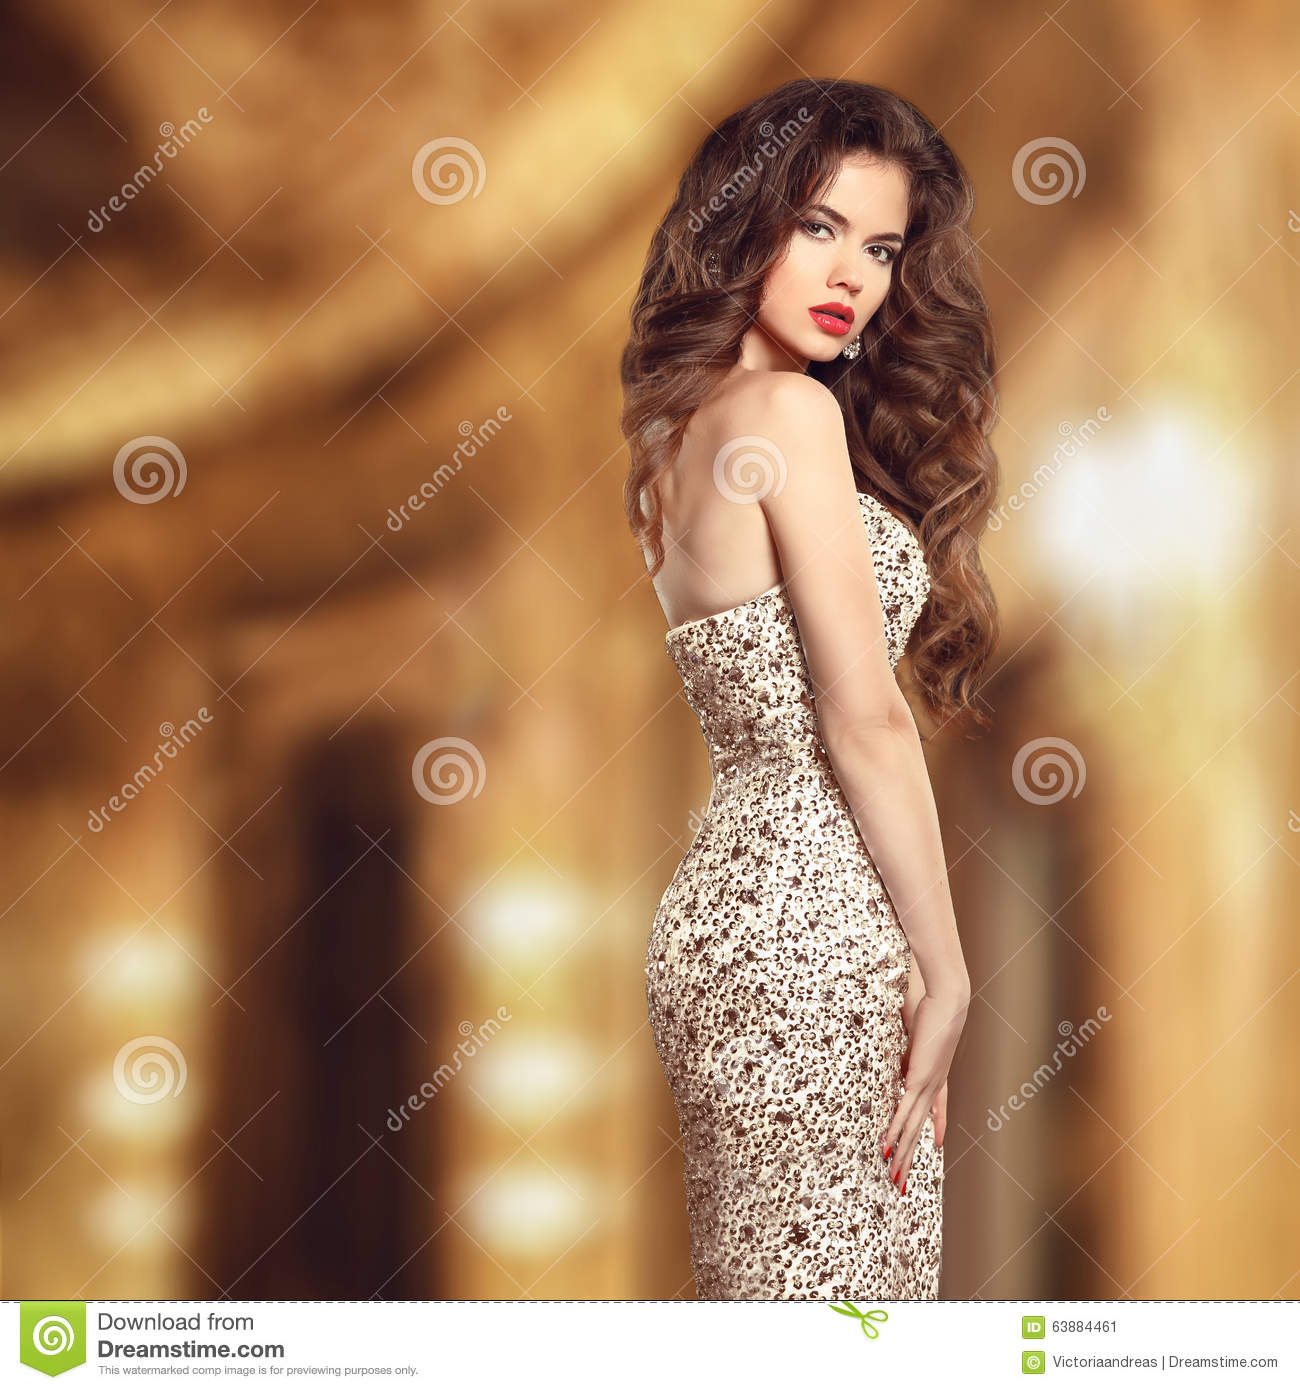 Classy And Glamorous Photo: Glamour Style Beauty Portrait. Beautiful Young Woman In